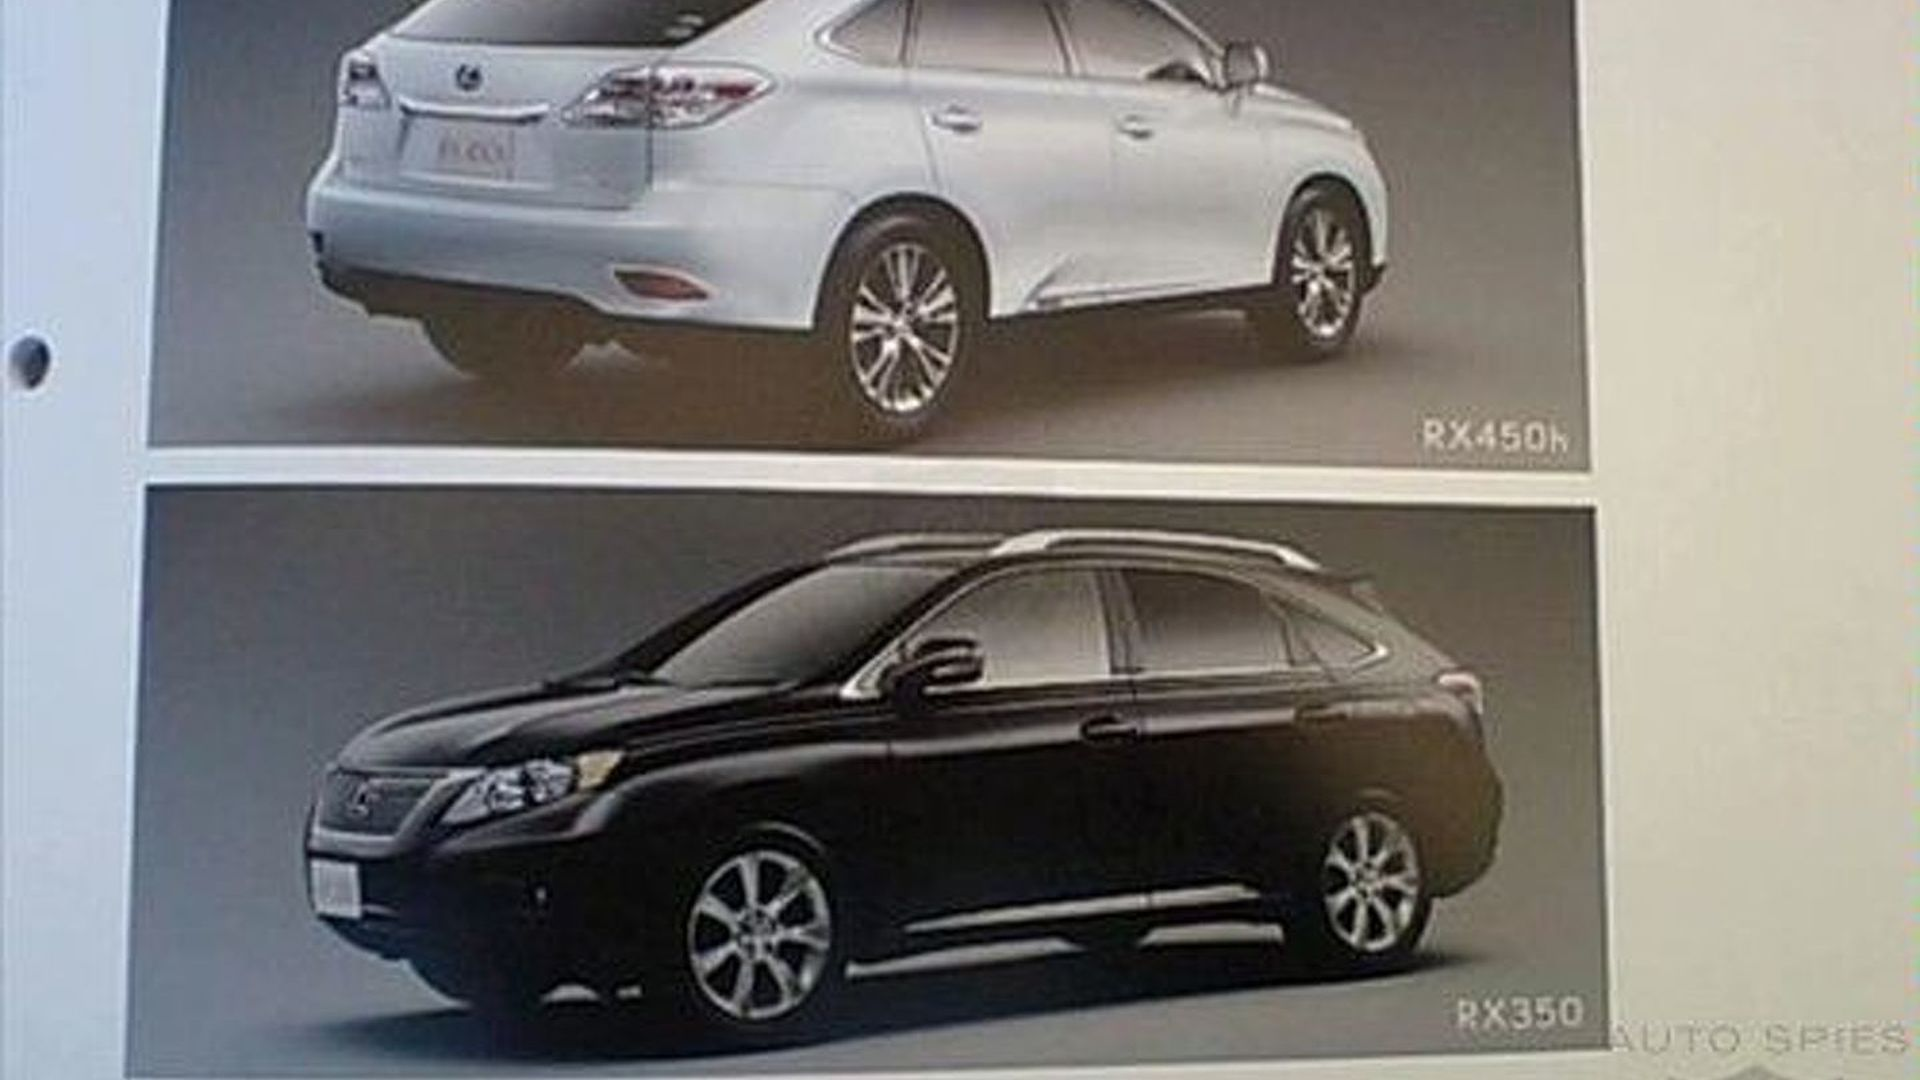 Lexus Rx And H Brochure Image on 2010 Lexus Rx 350 And 450h Brochure Images Leaked All New Generation